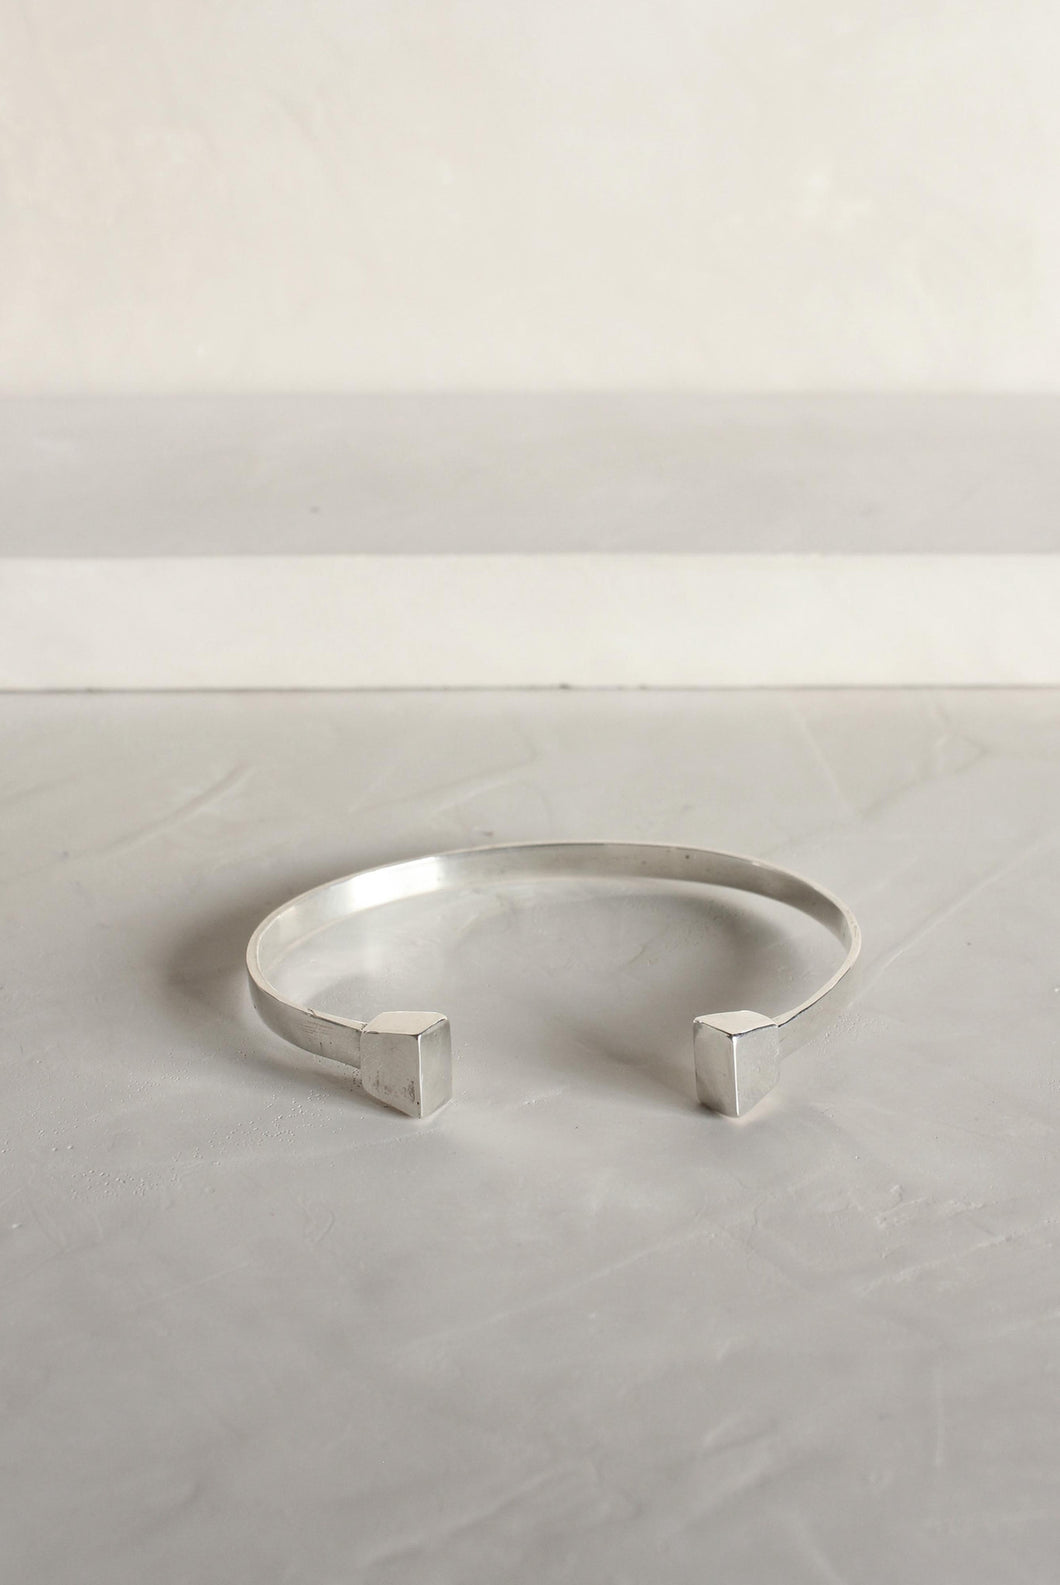 Series 4, bangle 1, sterling silver